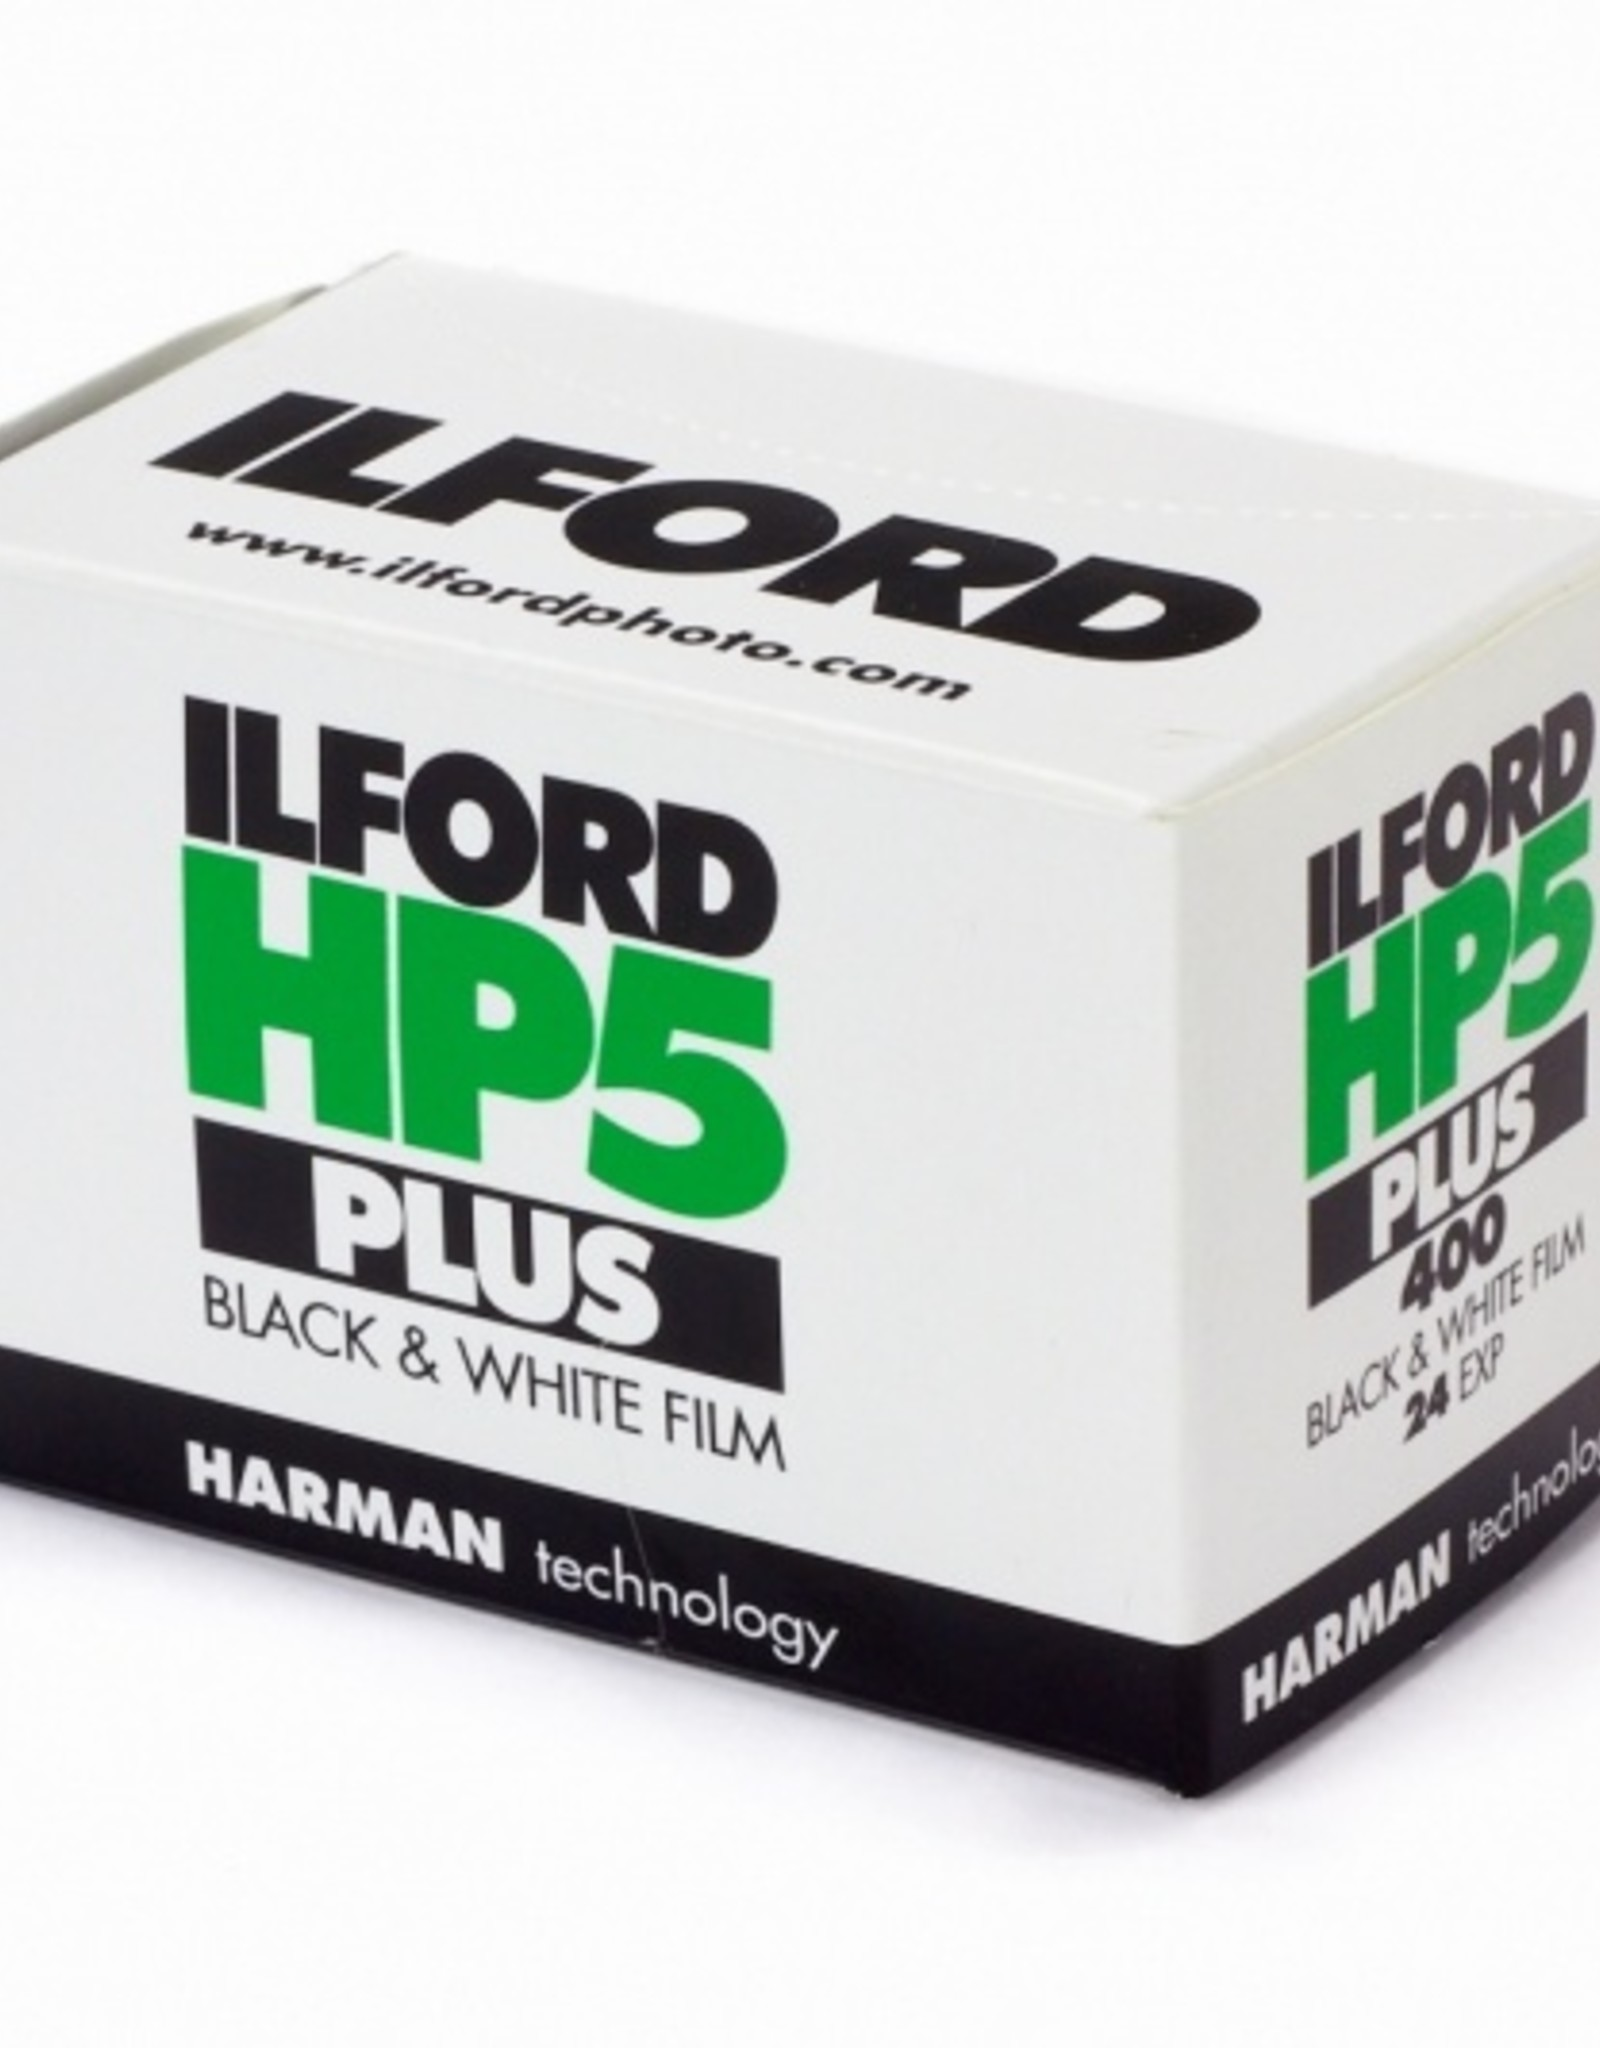 ILFORD HP5 135-24